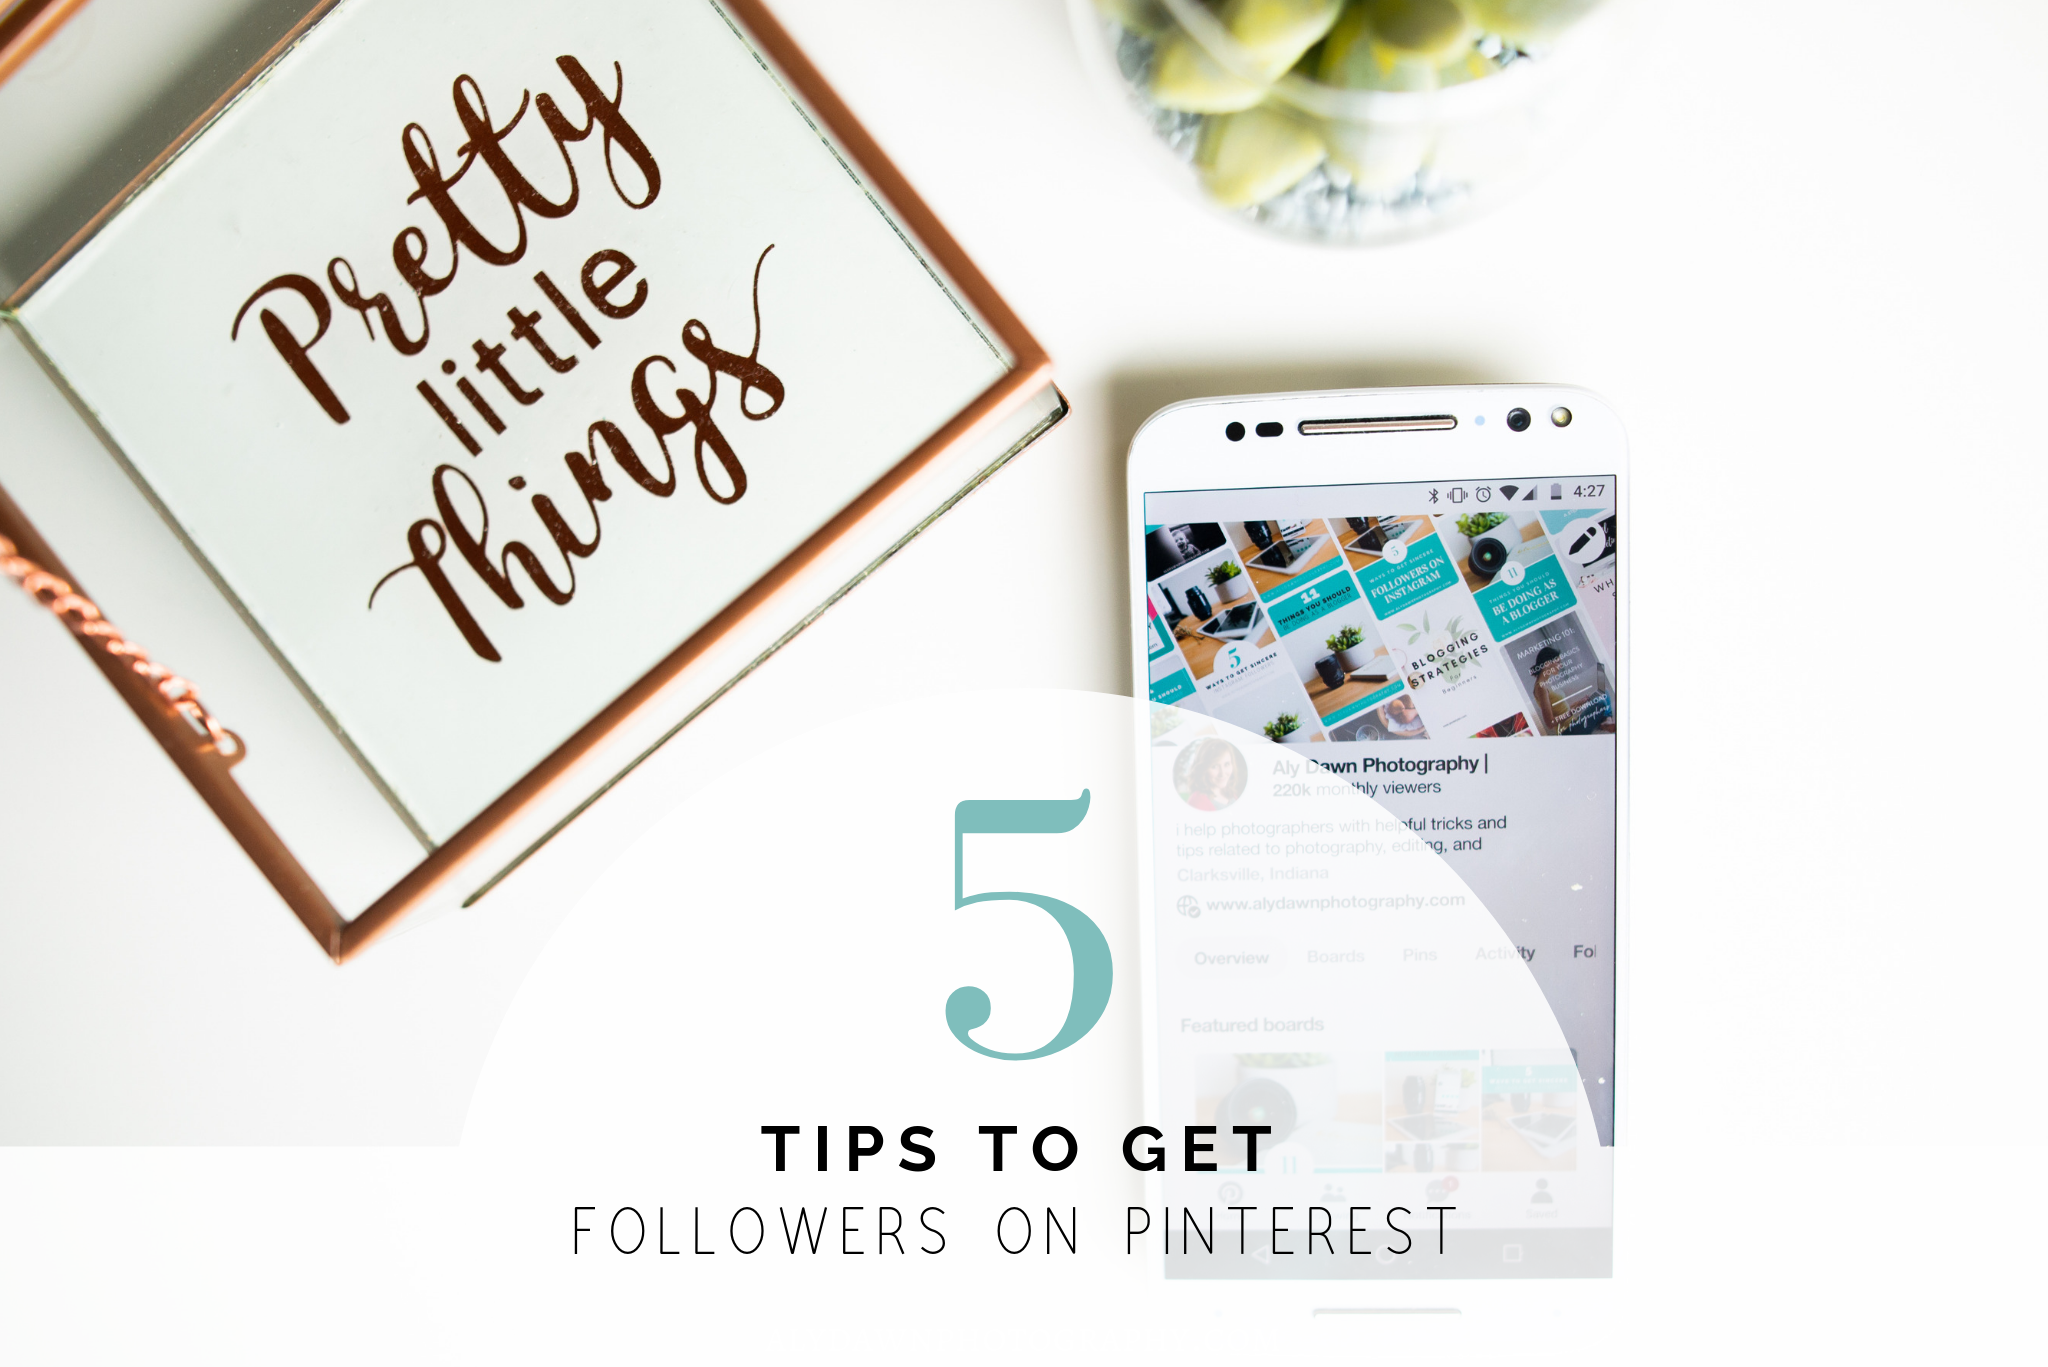 5 Tips to Get Followers on Pinterest